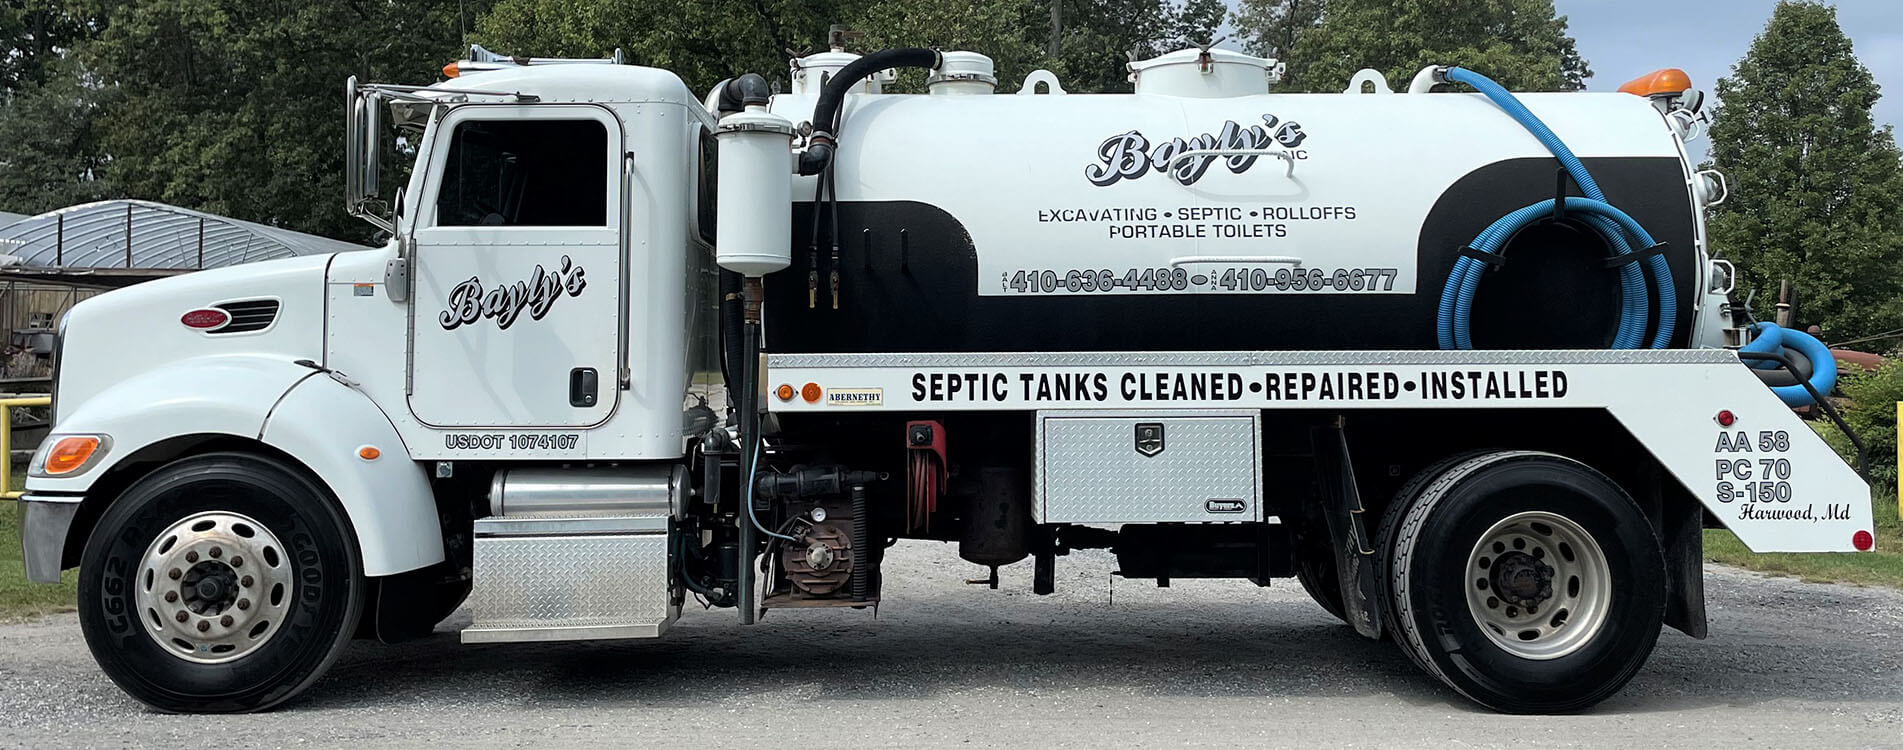 Edgewater, Glen Burnie and Pasadena Portable Toilet Rentals, Septic Company and Dumpster Cleaning